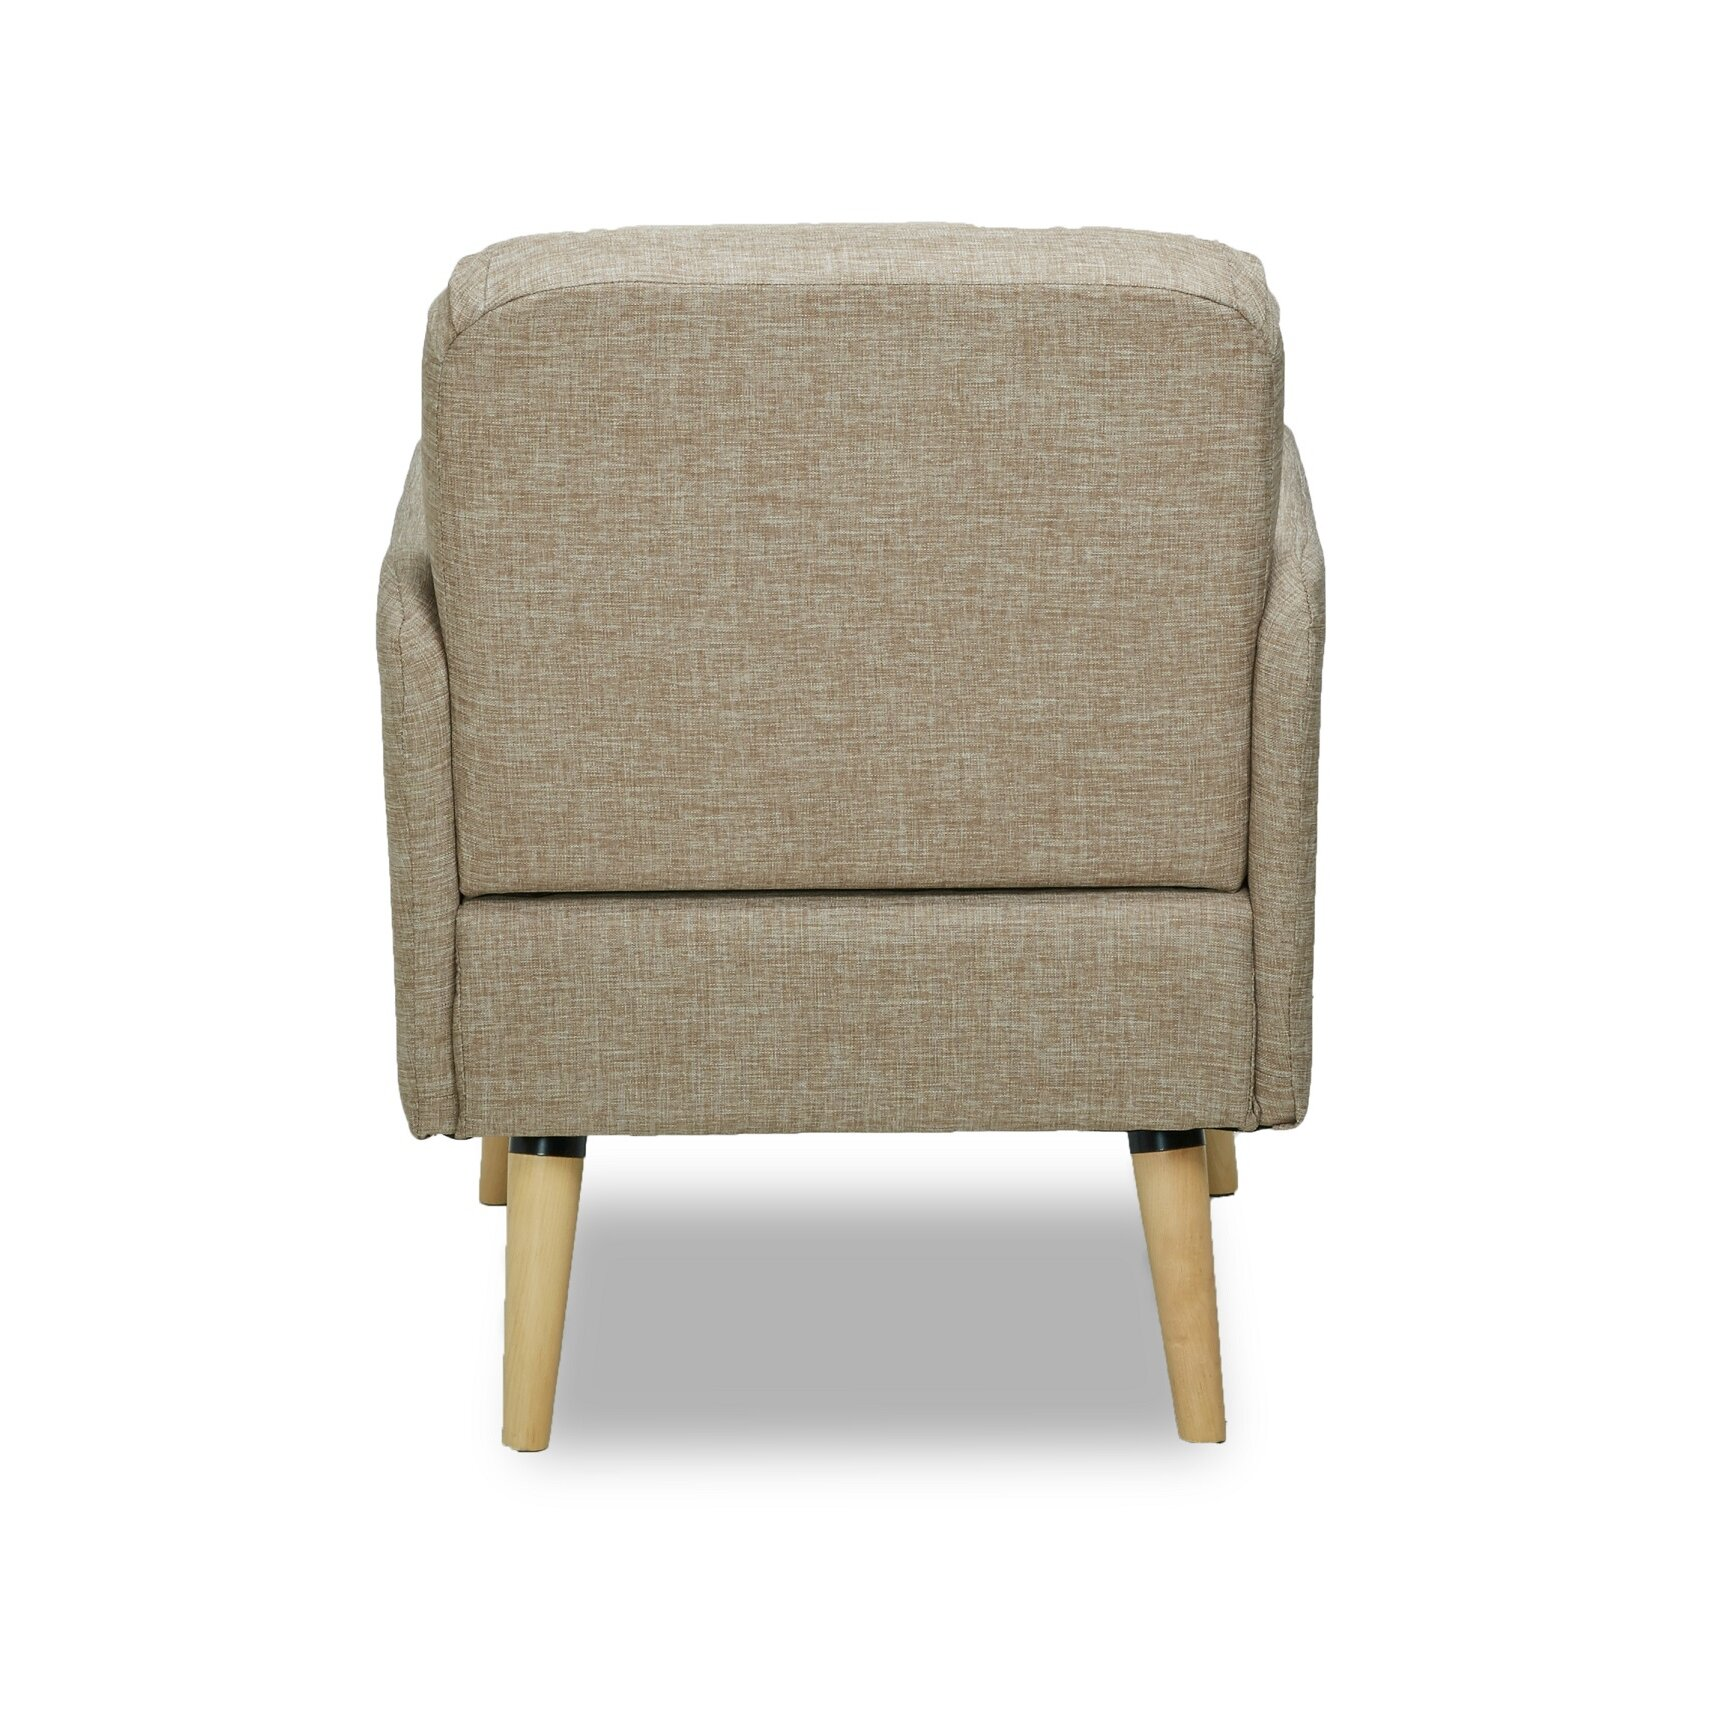 Container Accent Arm Chair Wayfairca : Accent Arm Chair C 1 from www.wayfair.ca size 1720 x 1720 jpeg 303kB